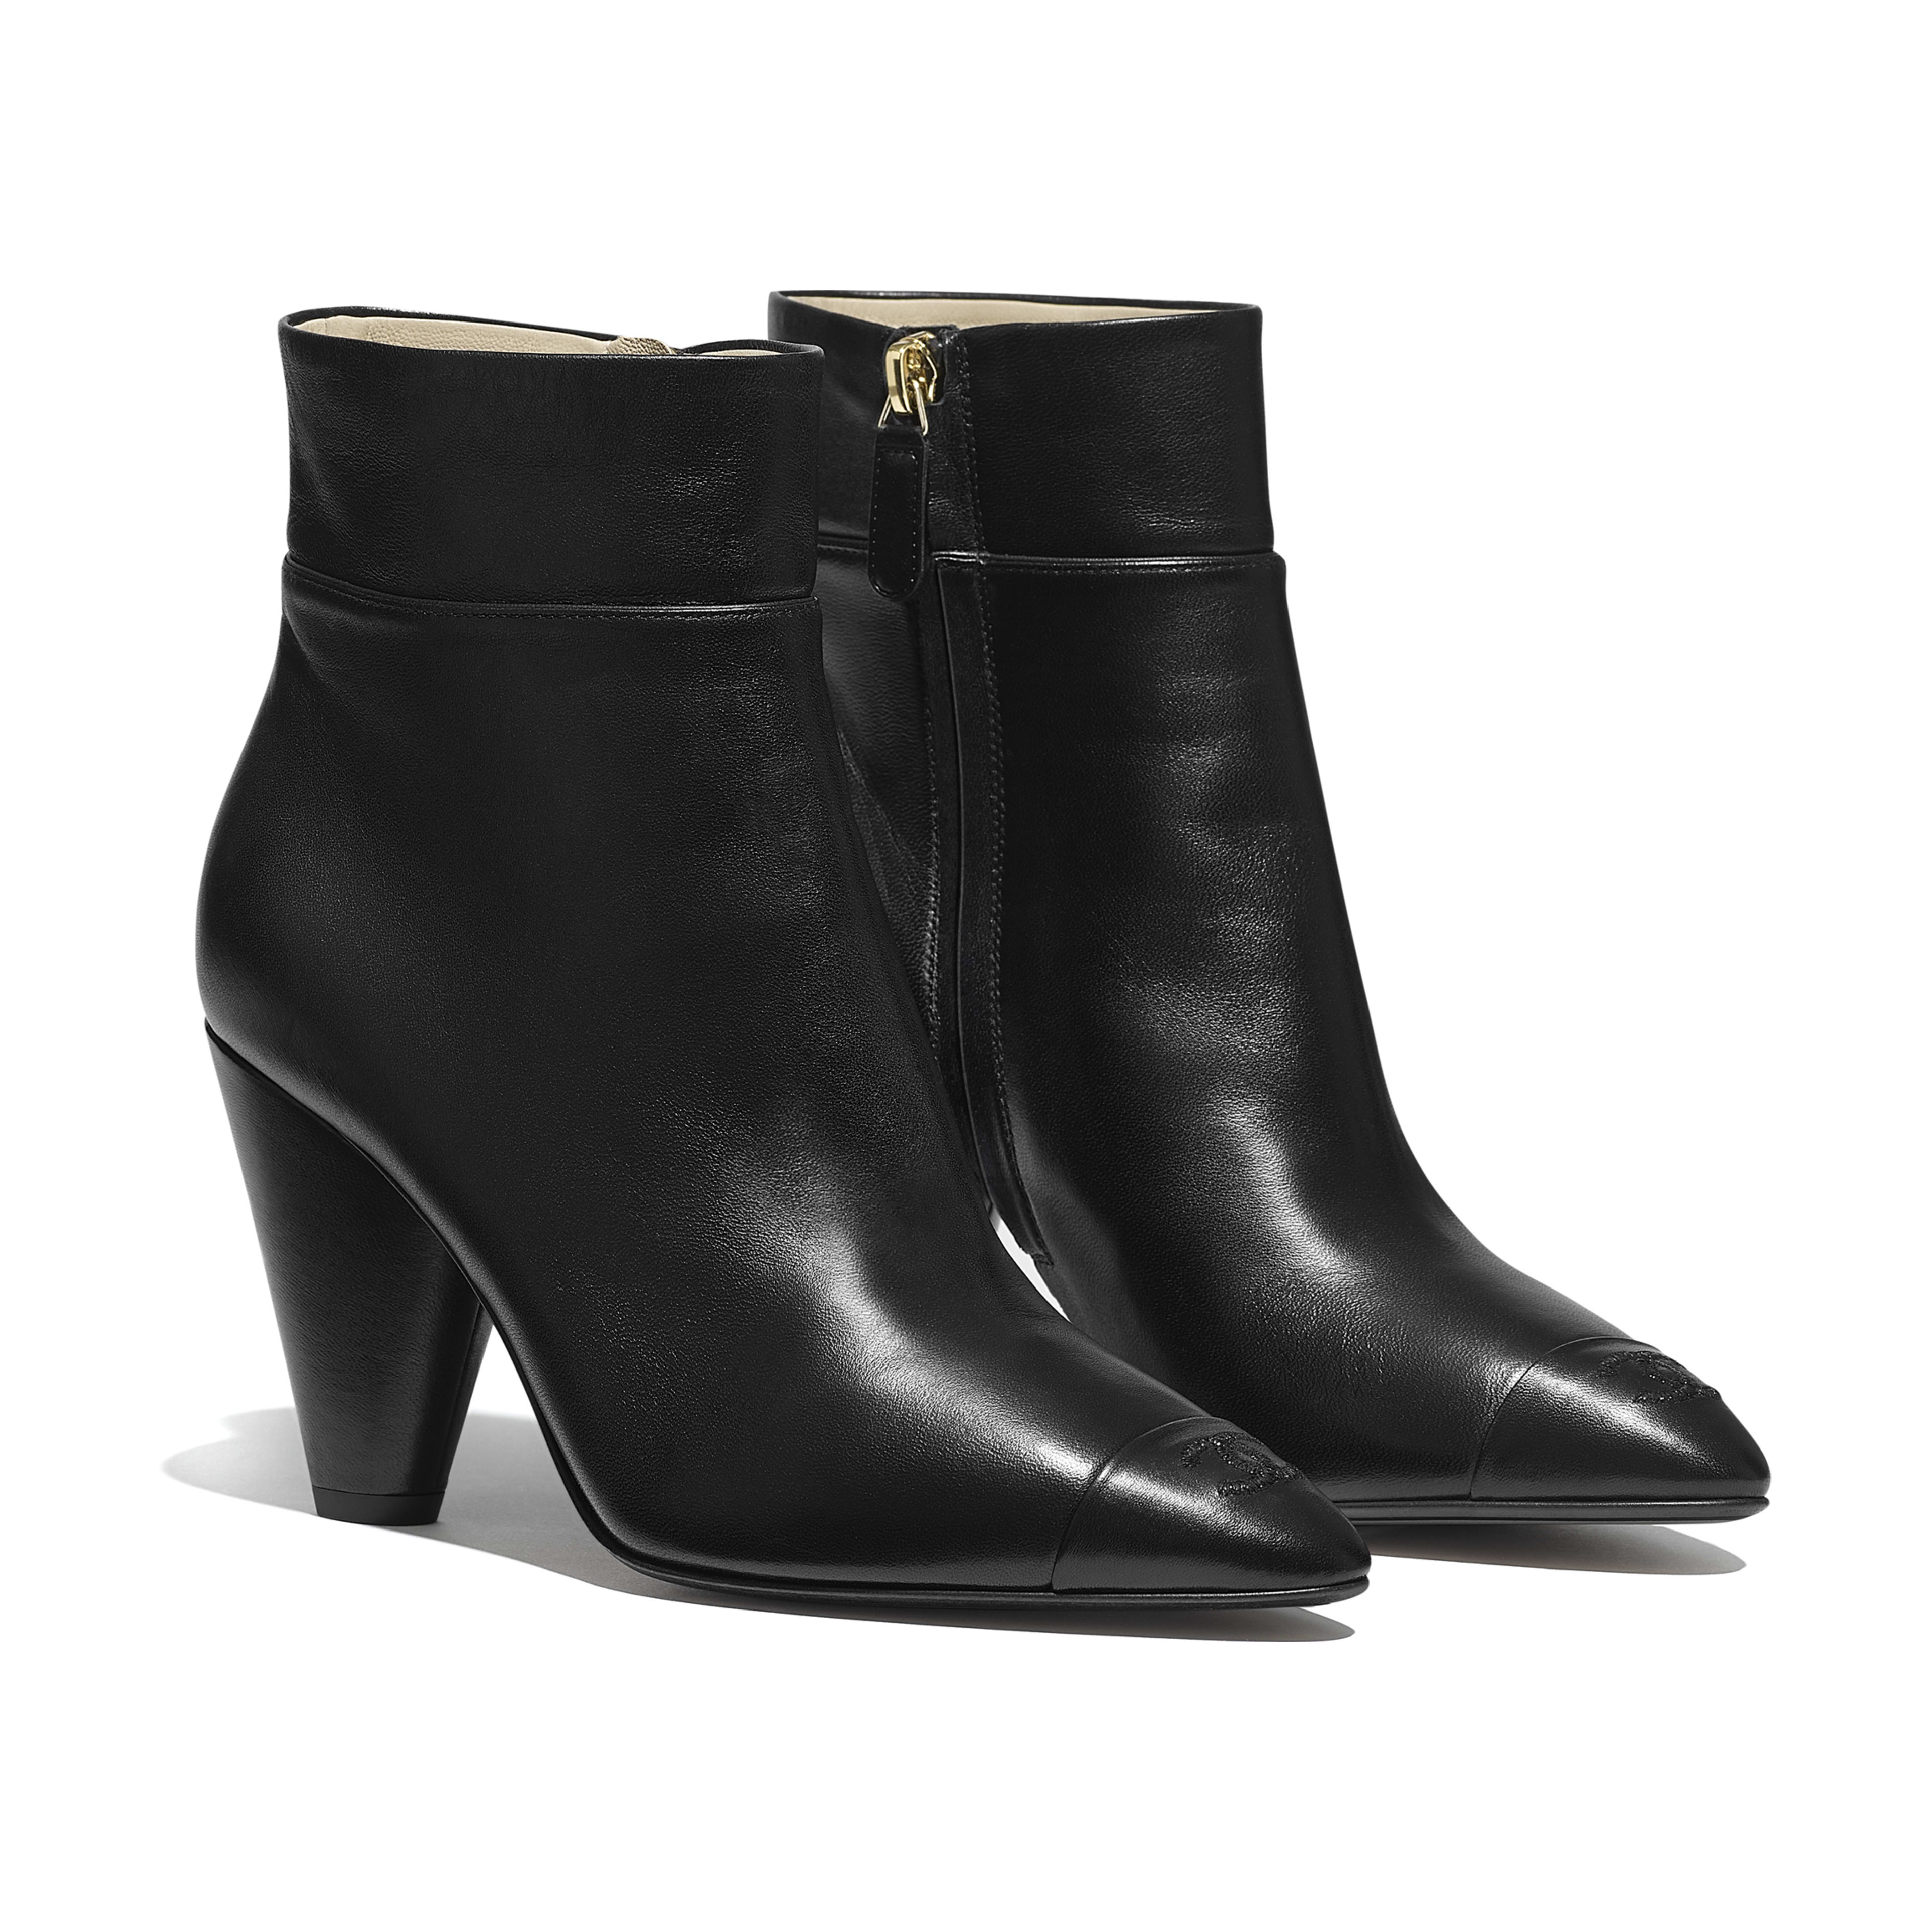 Ankle Boots - Black - Lambskin - Alternative view - see full sized version